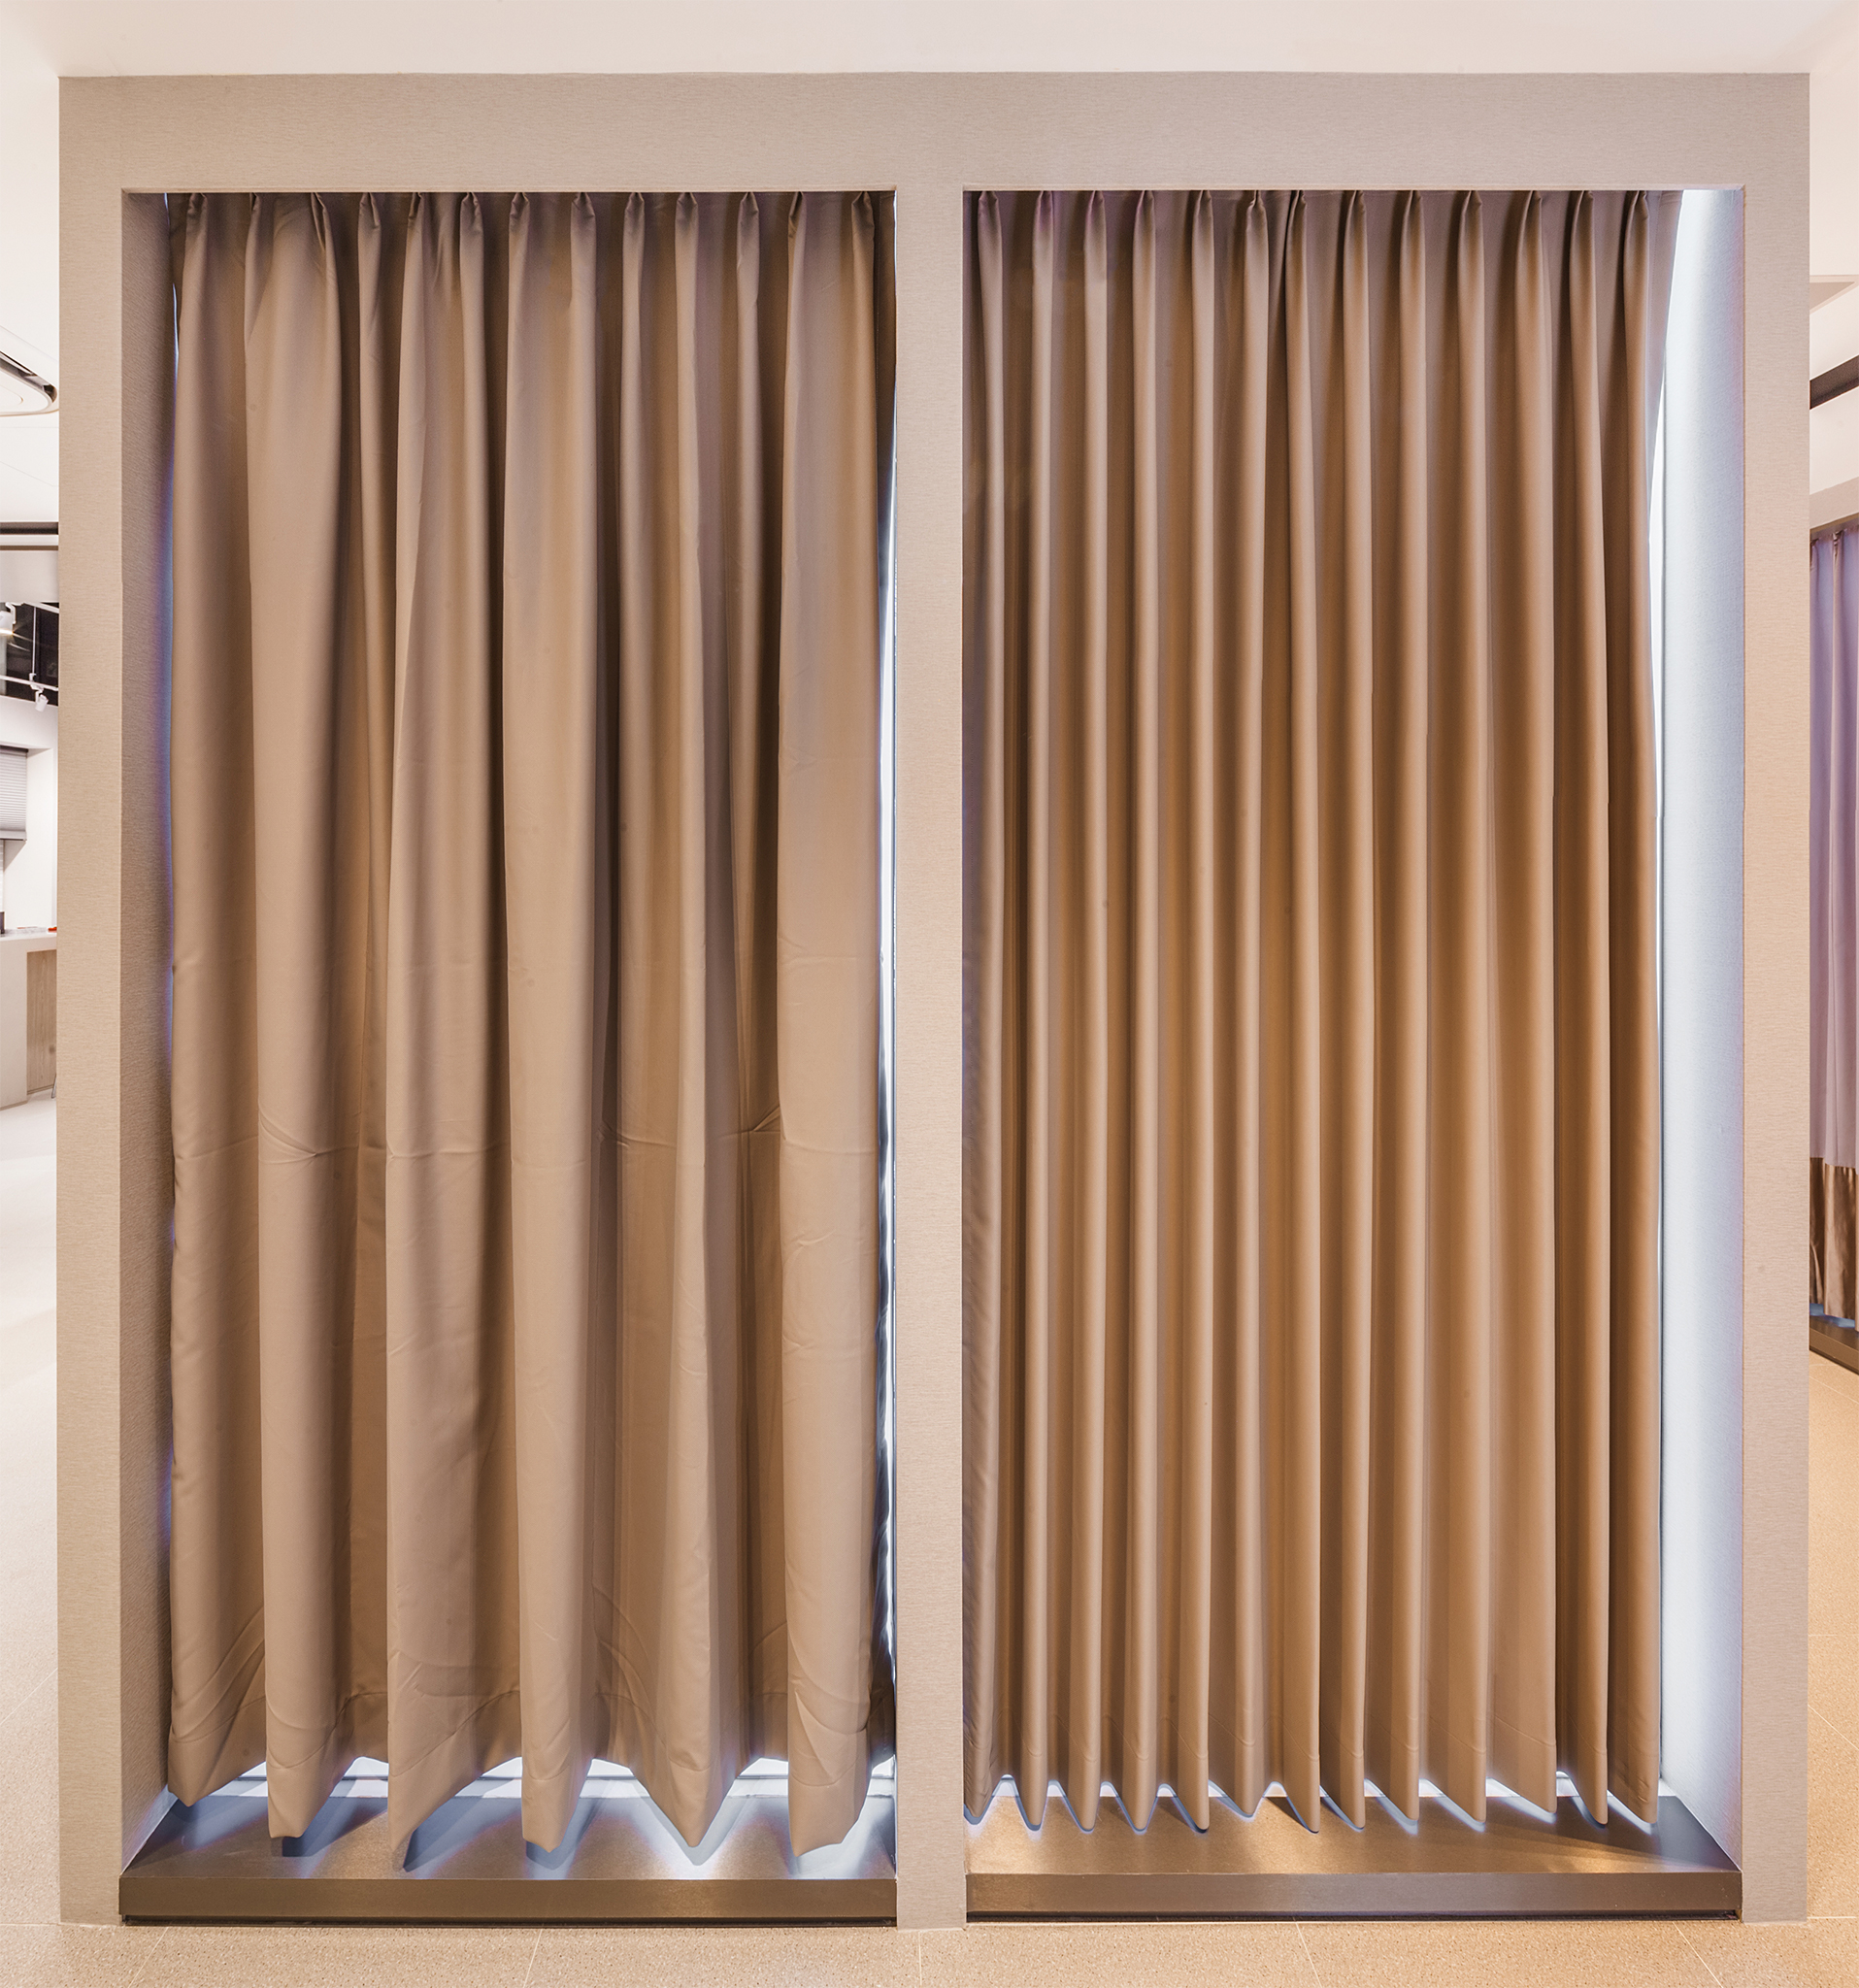 powered your solar roller screens blinds ca smart horizontal shading shades images vertical on rolled window in battery coverings partial makes best blin retractable and away motorized